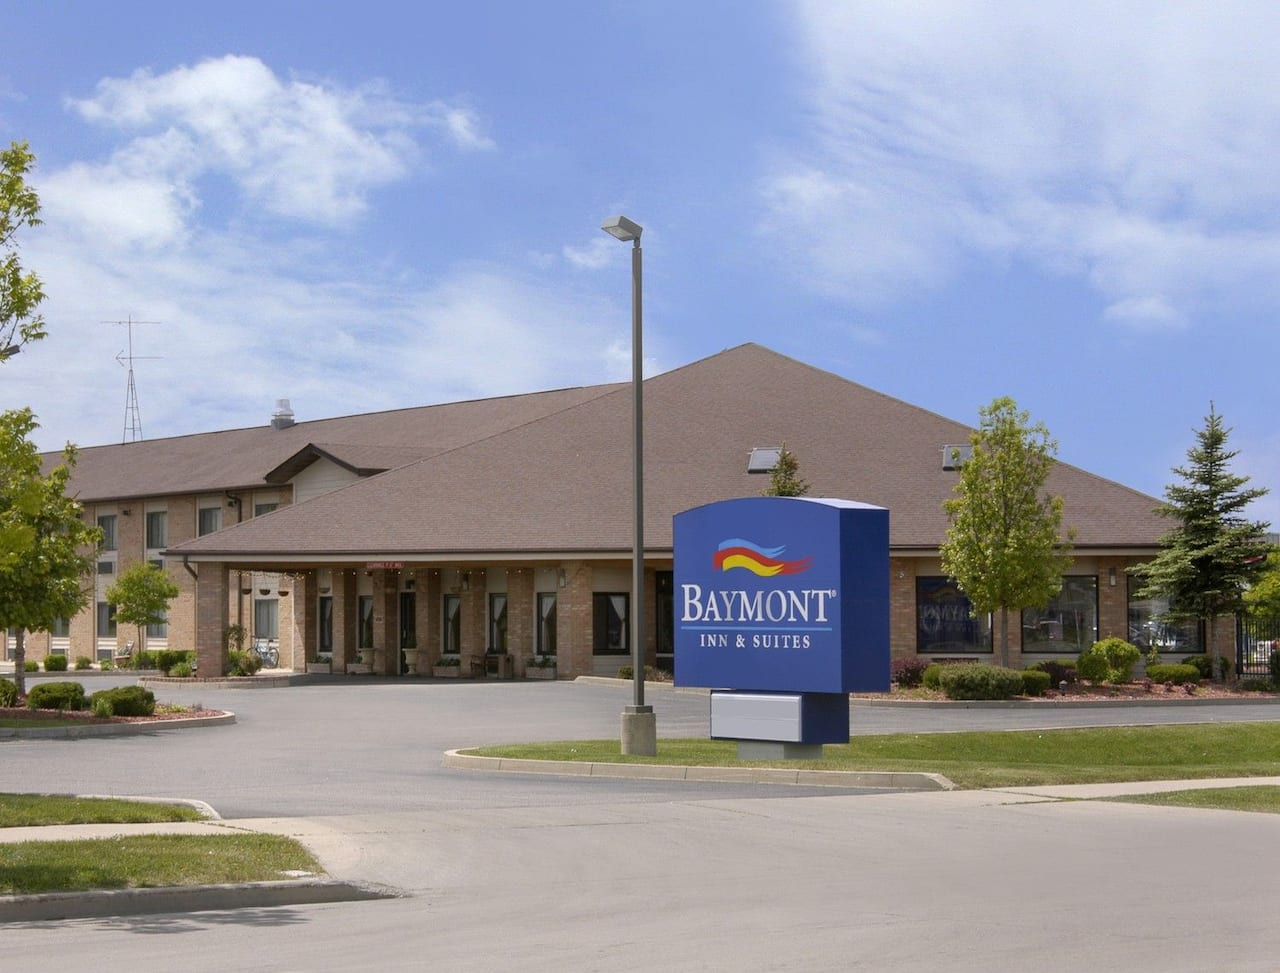 Baymont Inn & Suites Whitewater in Whitewater, Wisconsin